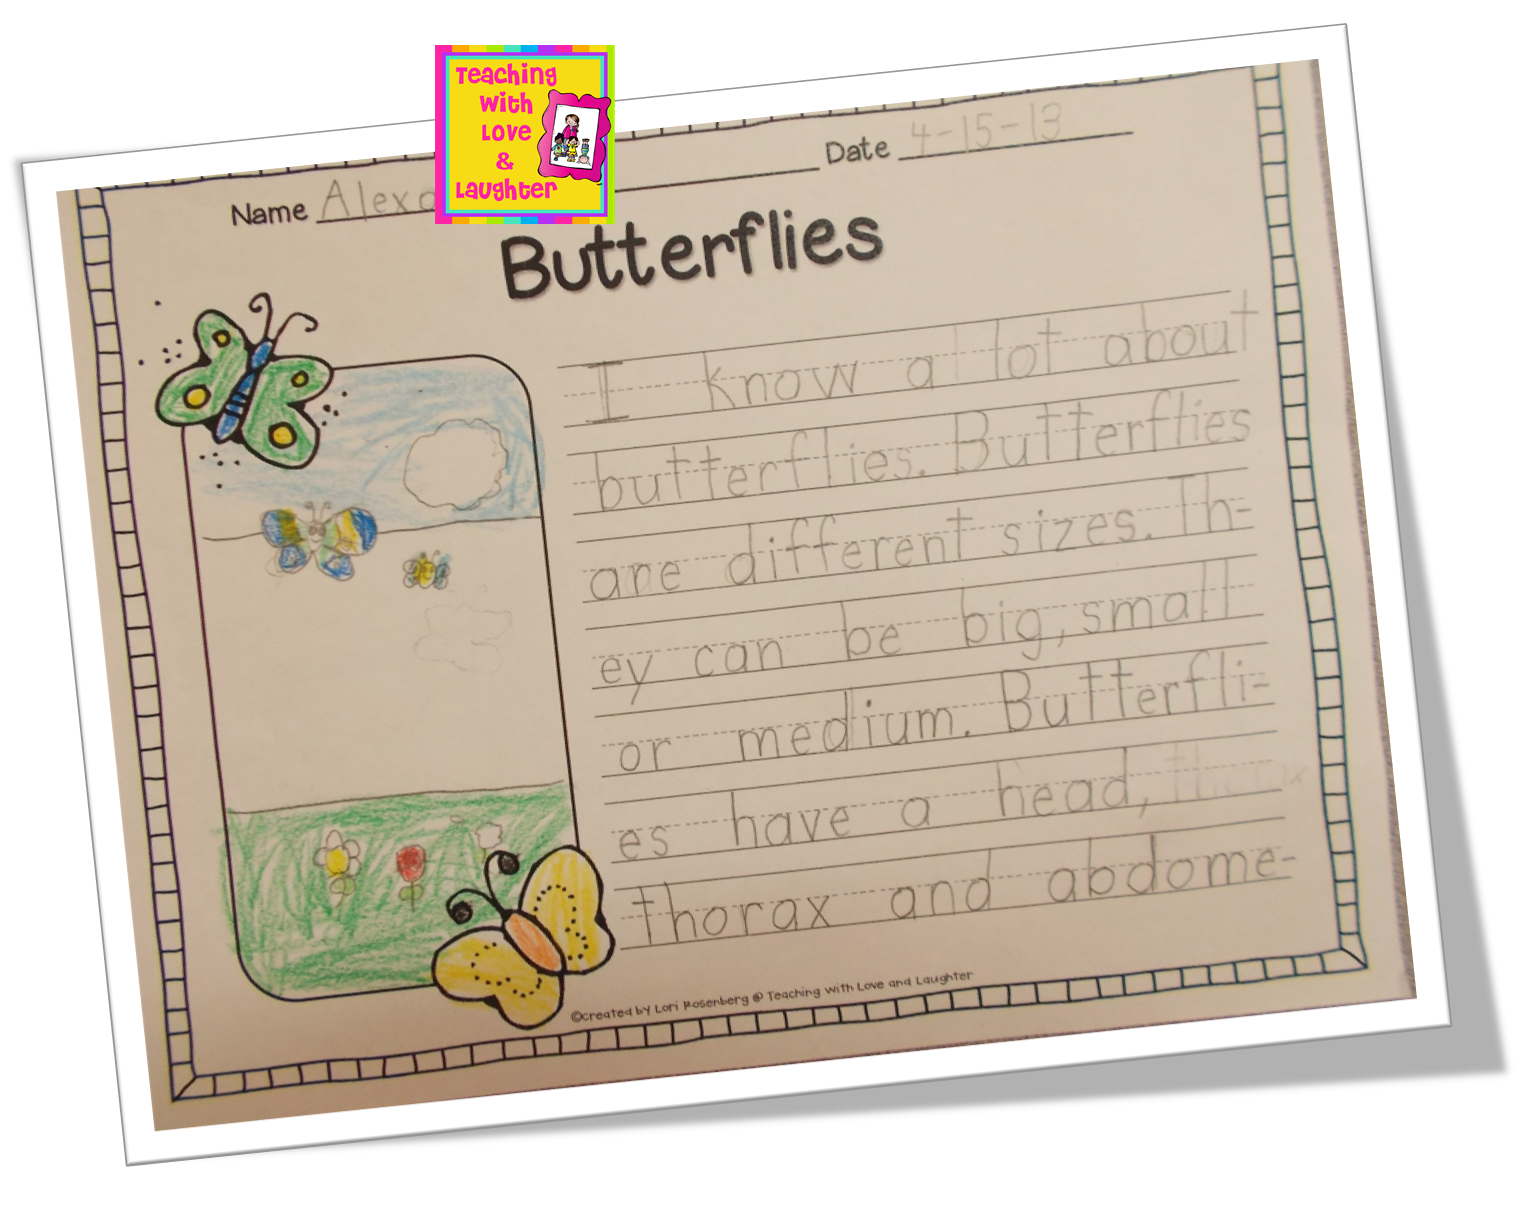 essay on butterfly essay on butterfly essay on ldquo butterfly  essay on butterfly essay on ldquo butterfly rdquo in hindi essay on teaching love and laughter